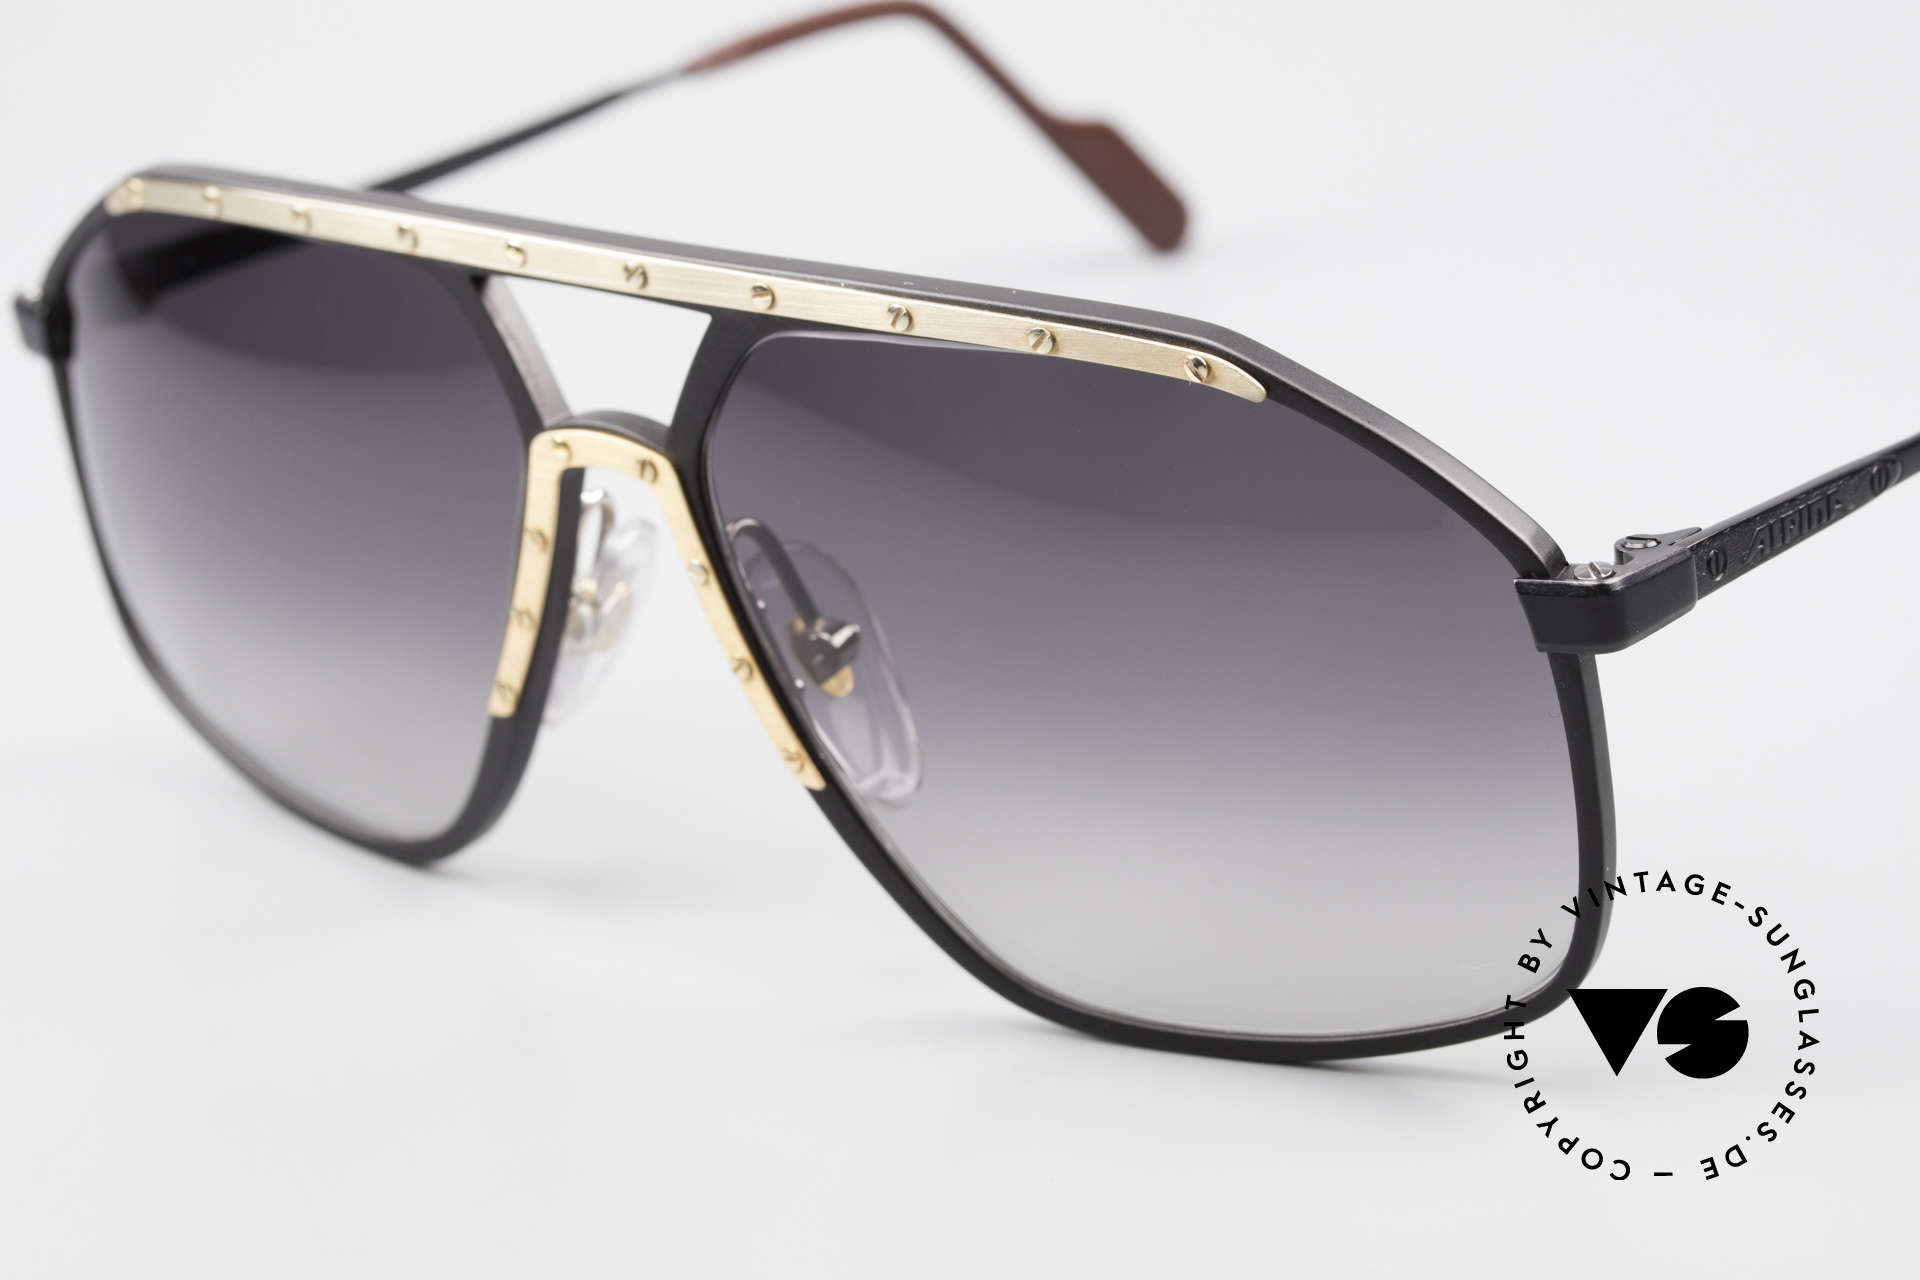 Alpina M1/7 XL Vintage Shades Early 90's, apart from that, similarly distinctive and legendary!, Made for Men